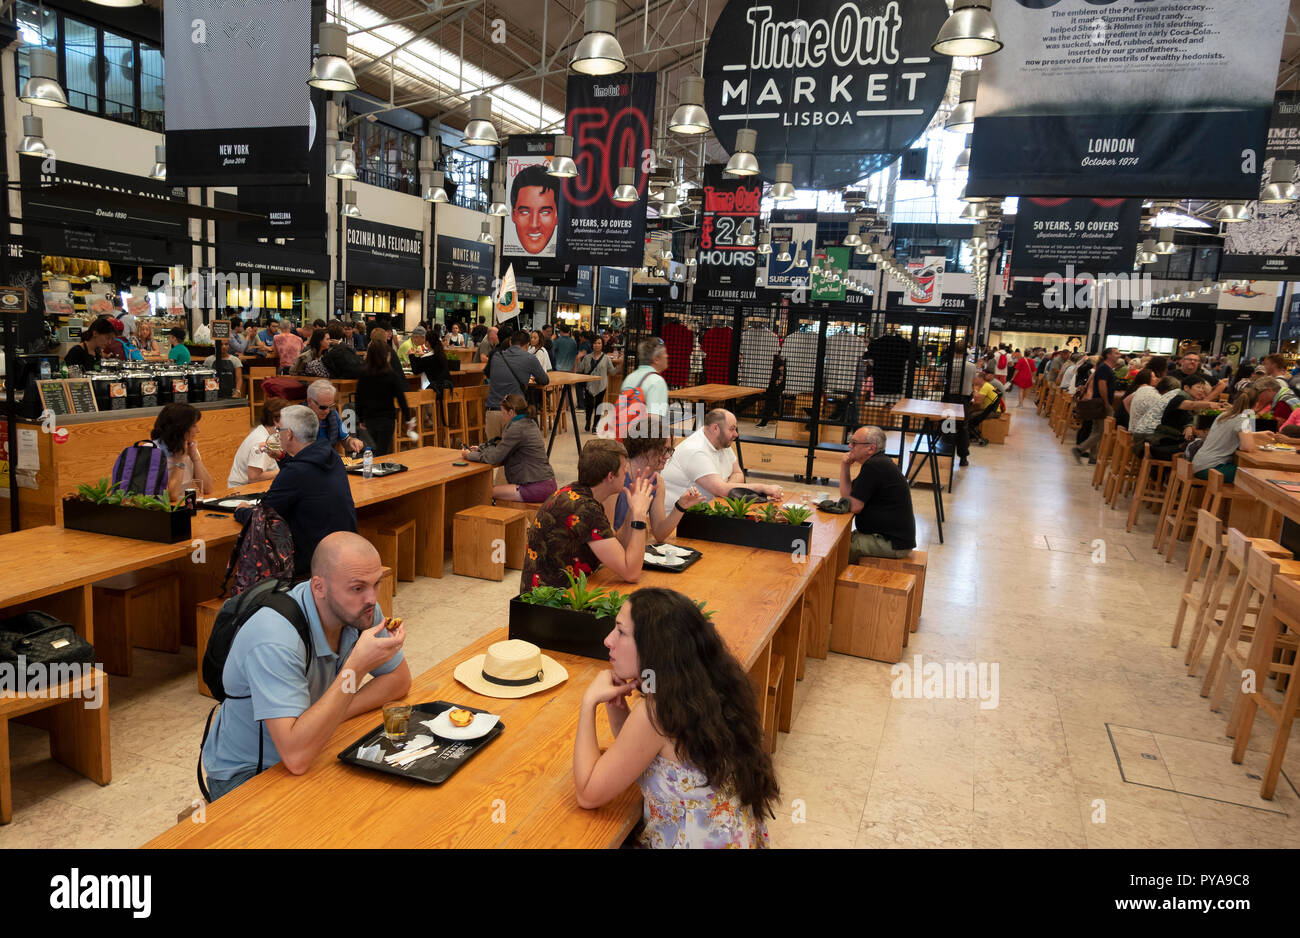 Time Out Market Lisboa, a food hall located in the Mercado da Ribeira,  Cais do Sodre in Lisbon, Portugal, a large interior area with many food stalls - Stock Image